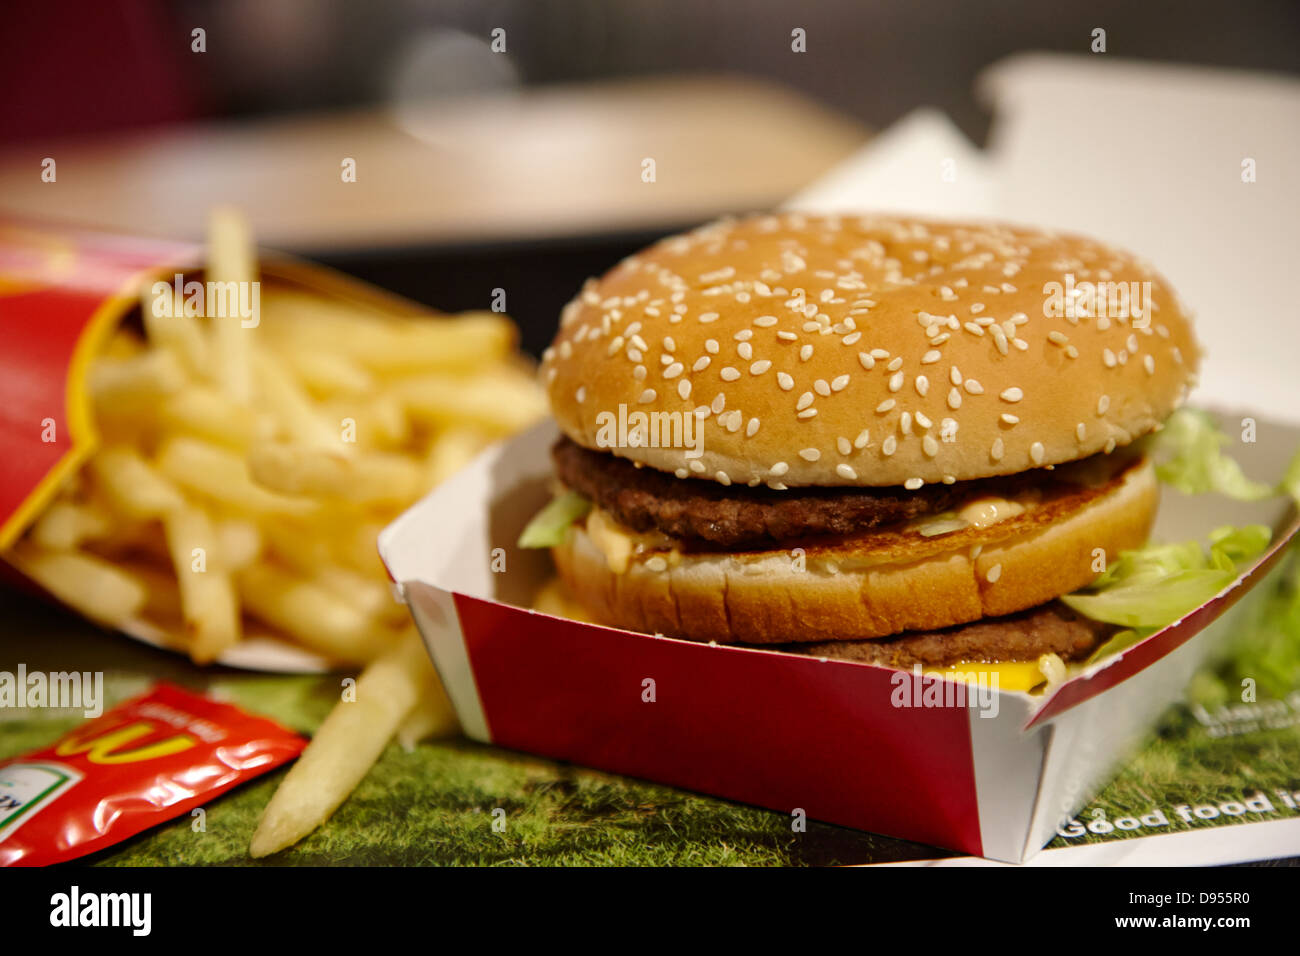 big mac meal from mcdonalds - Stock Image